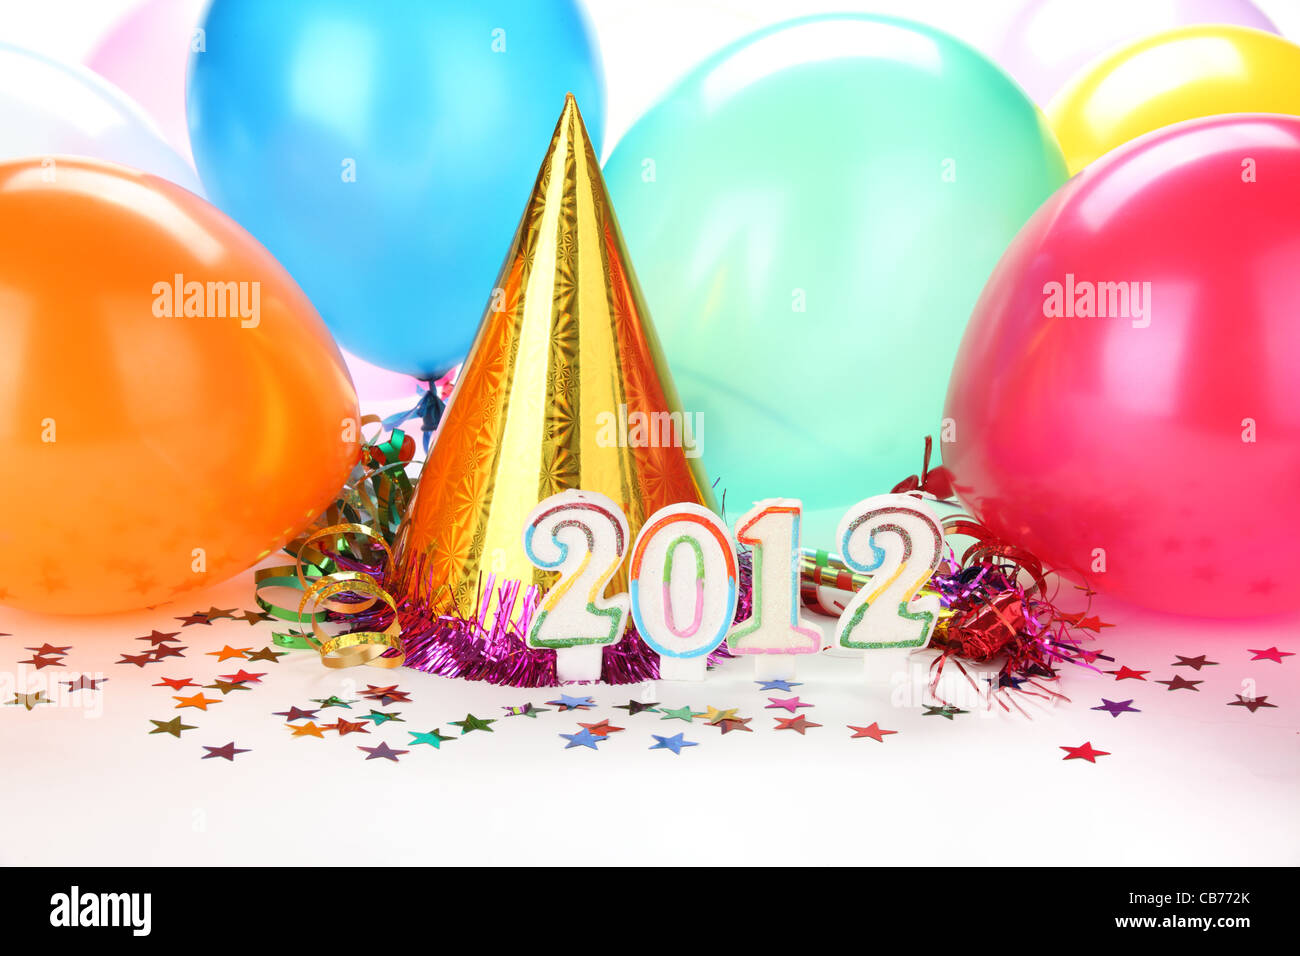 2012 New Year's Party Decoration - Stock Image